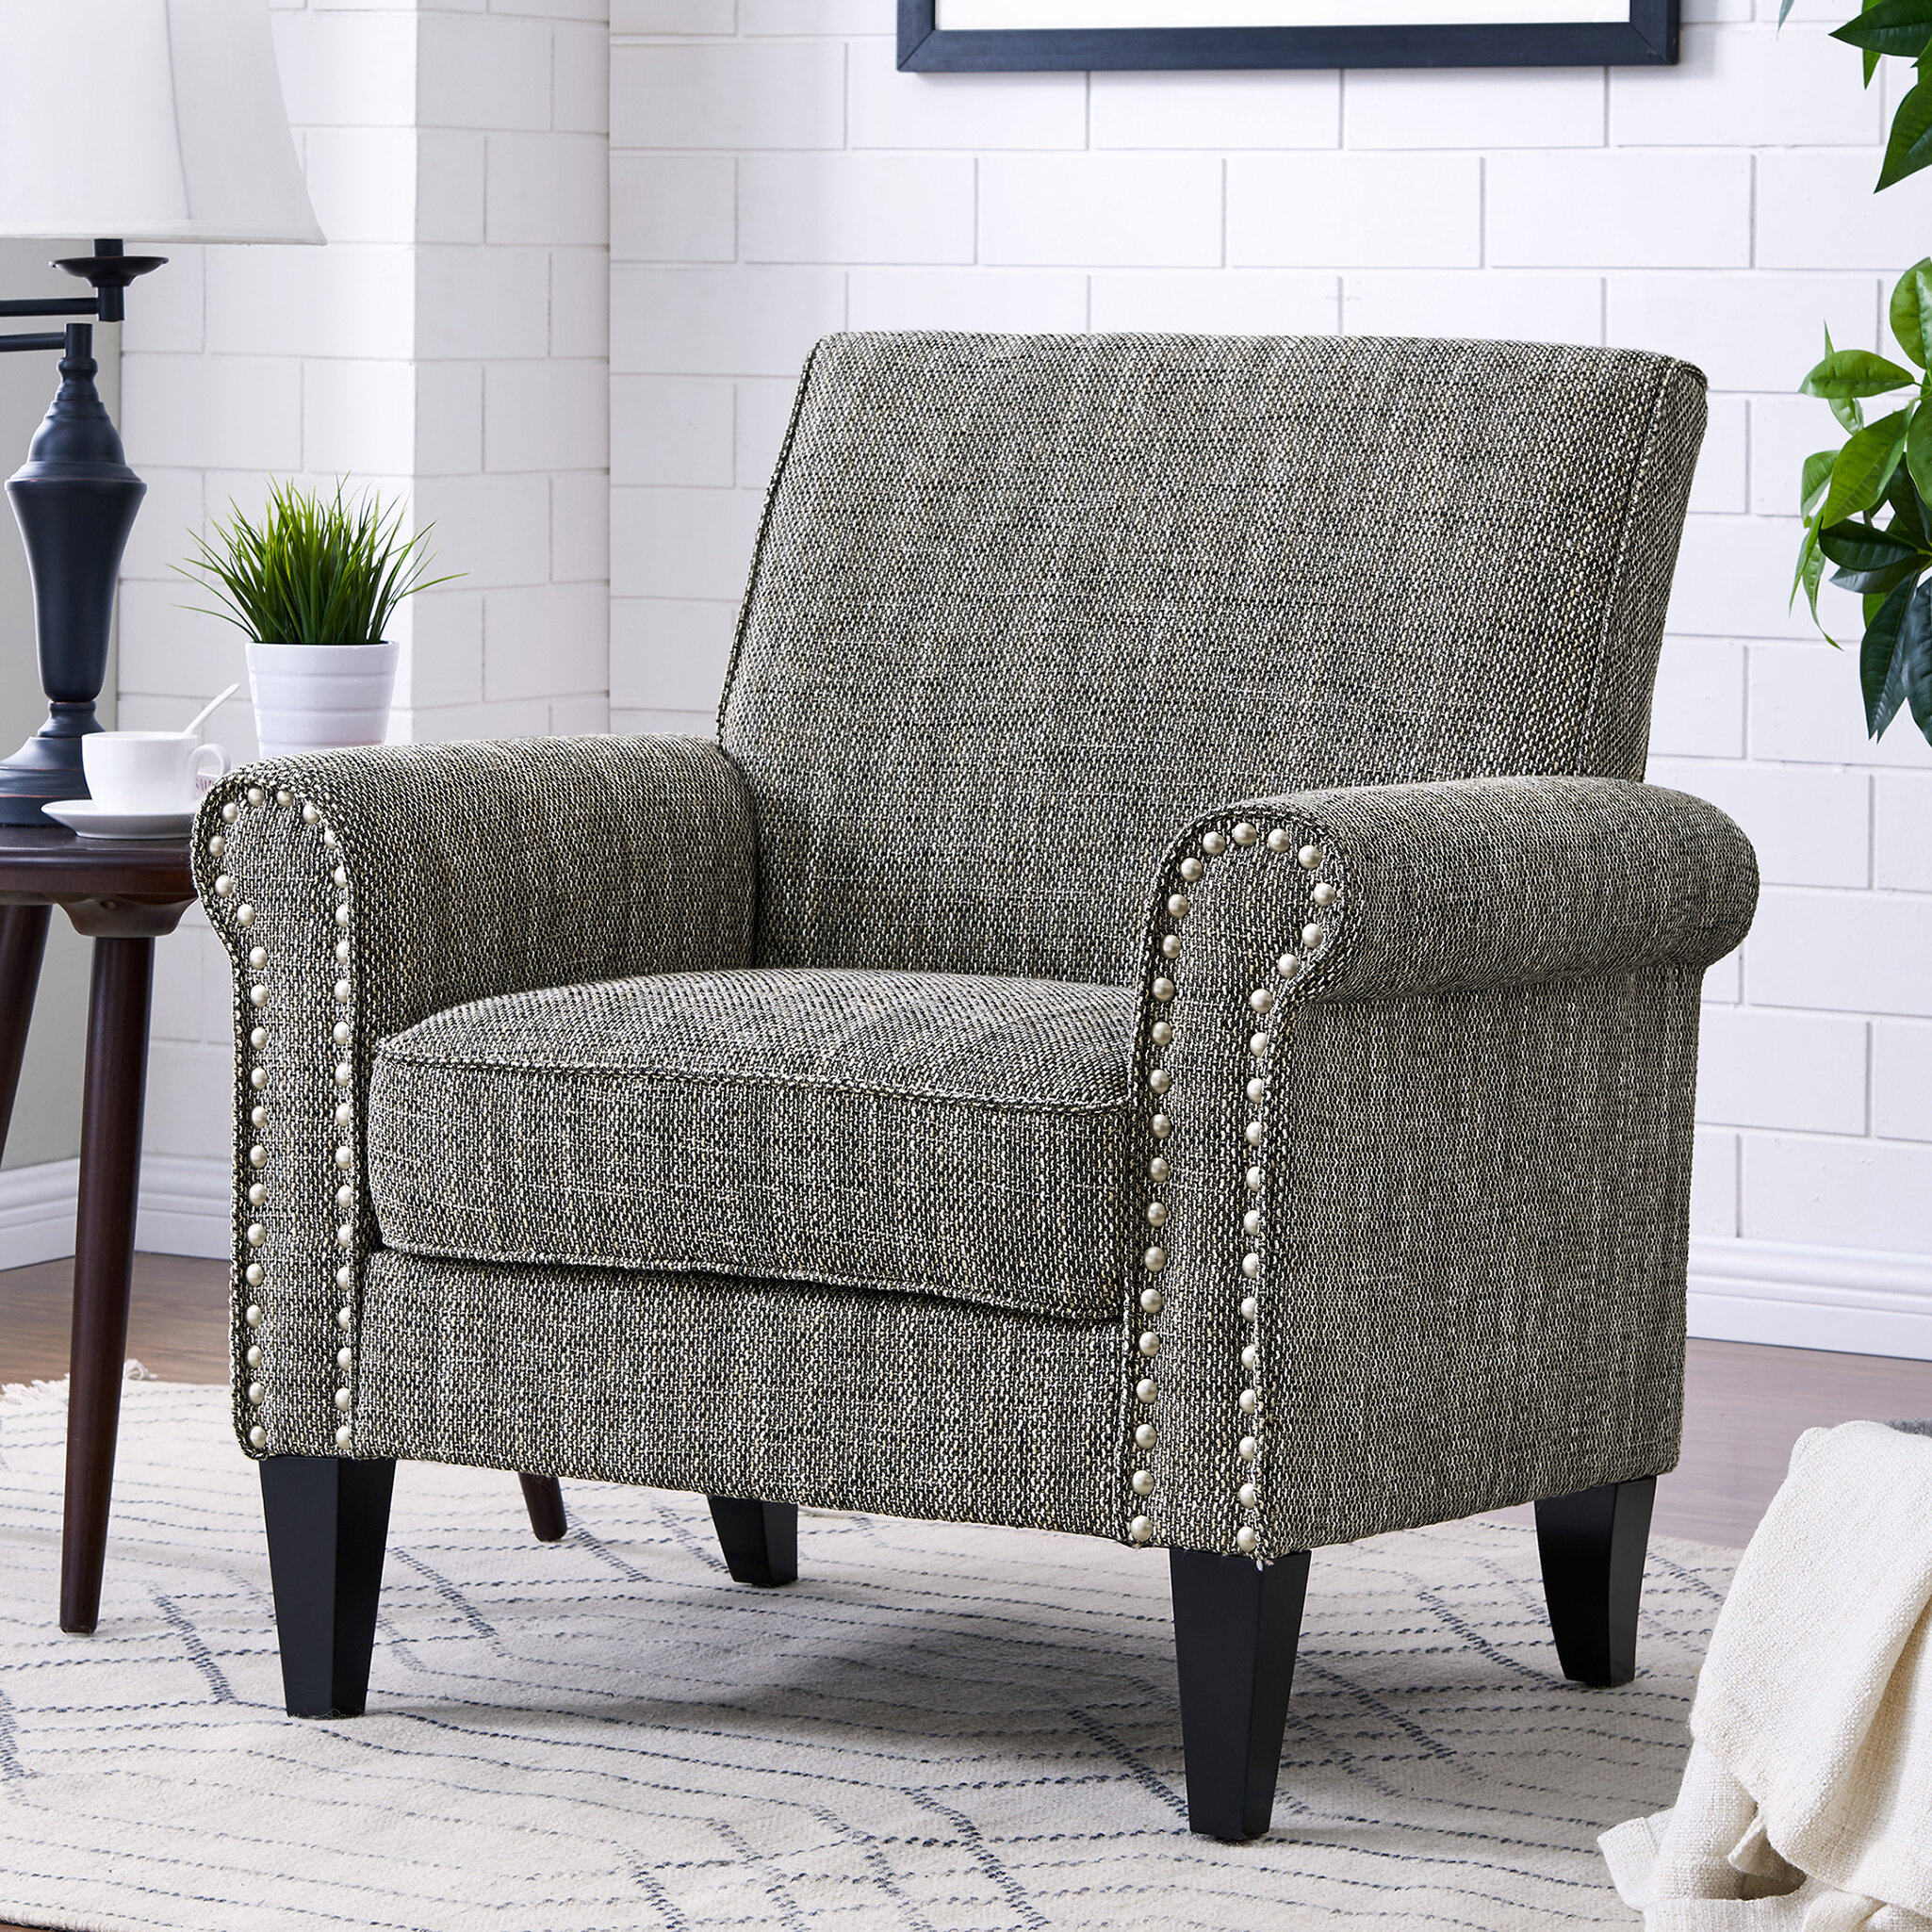 White Accent Chairs You'Ll Love In 2021 | Wayfair Intended For Pitts Armchairs (View 8 of 15)